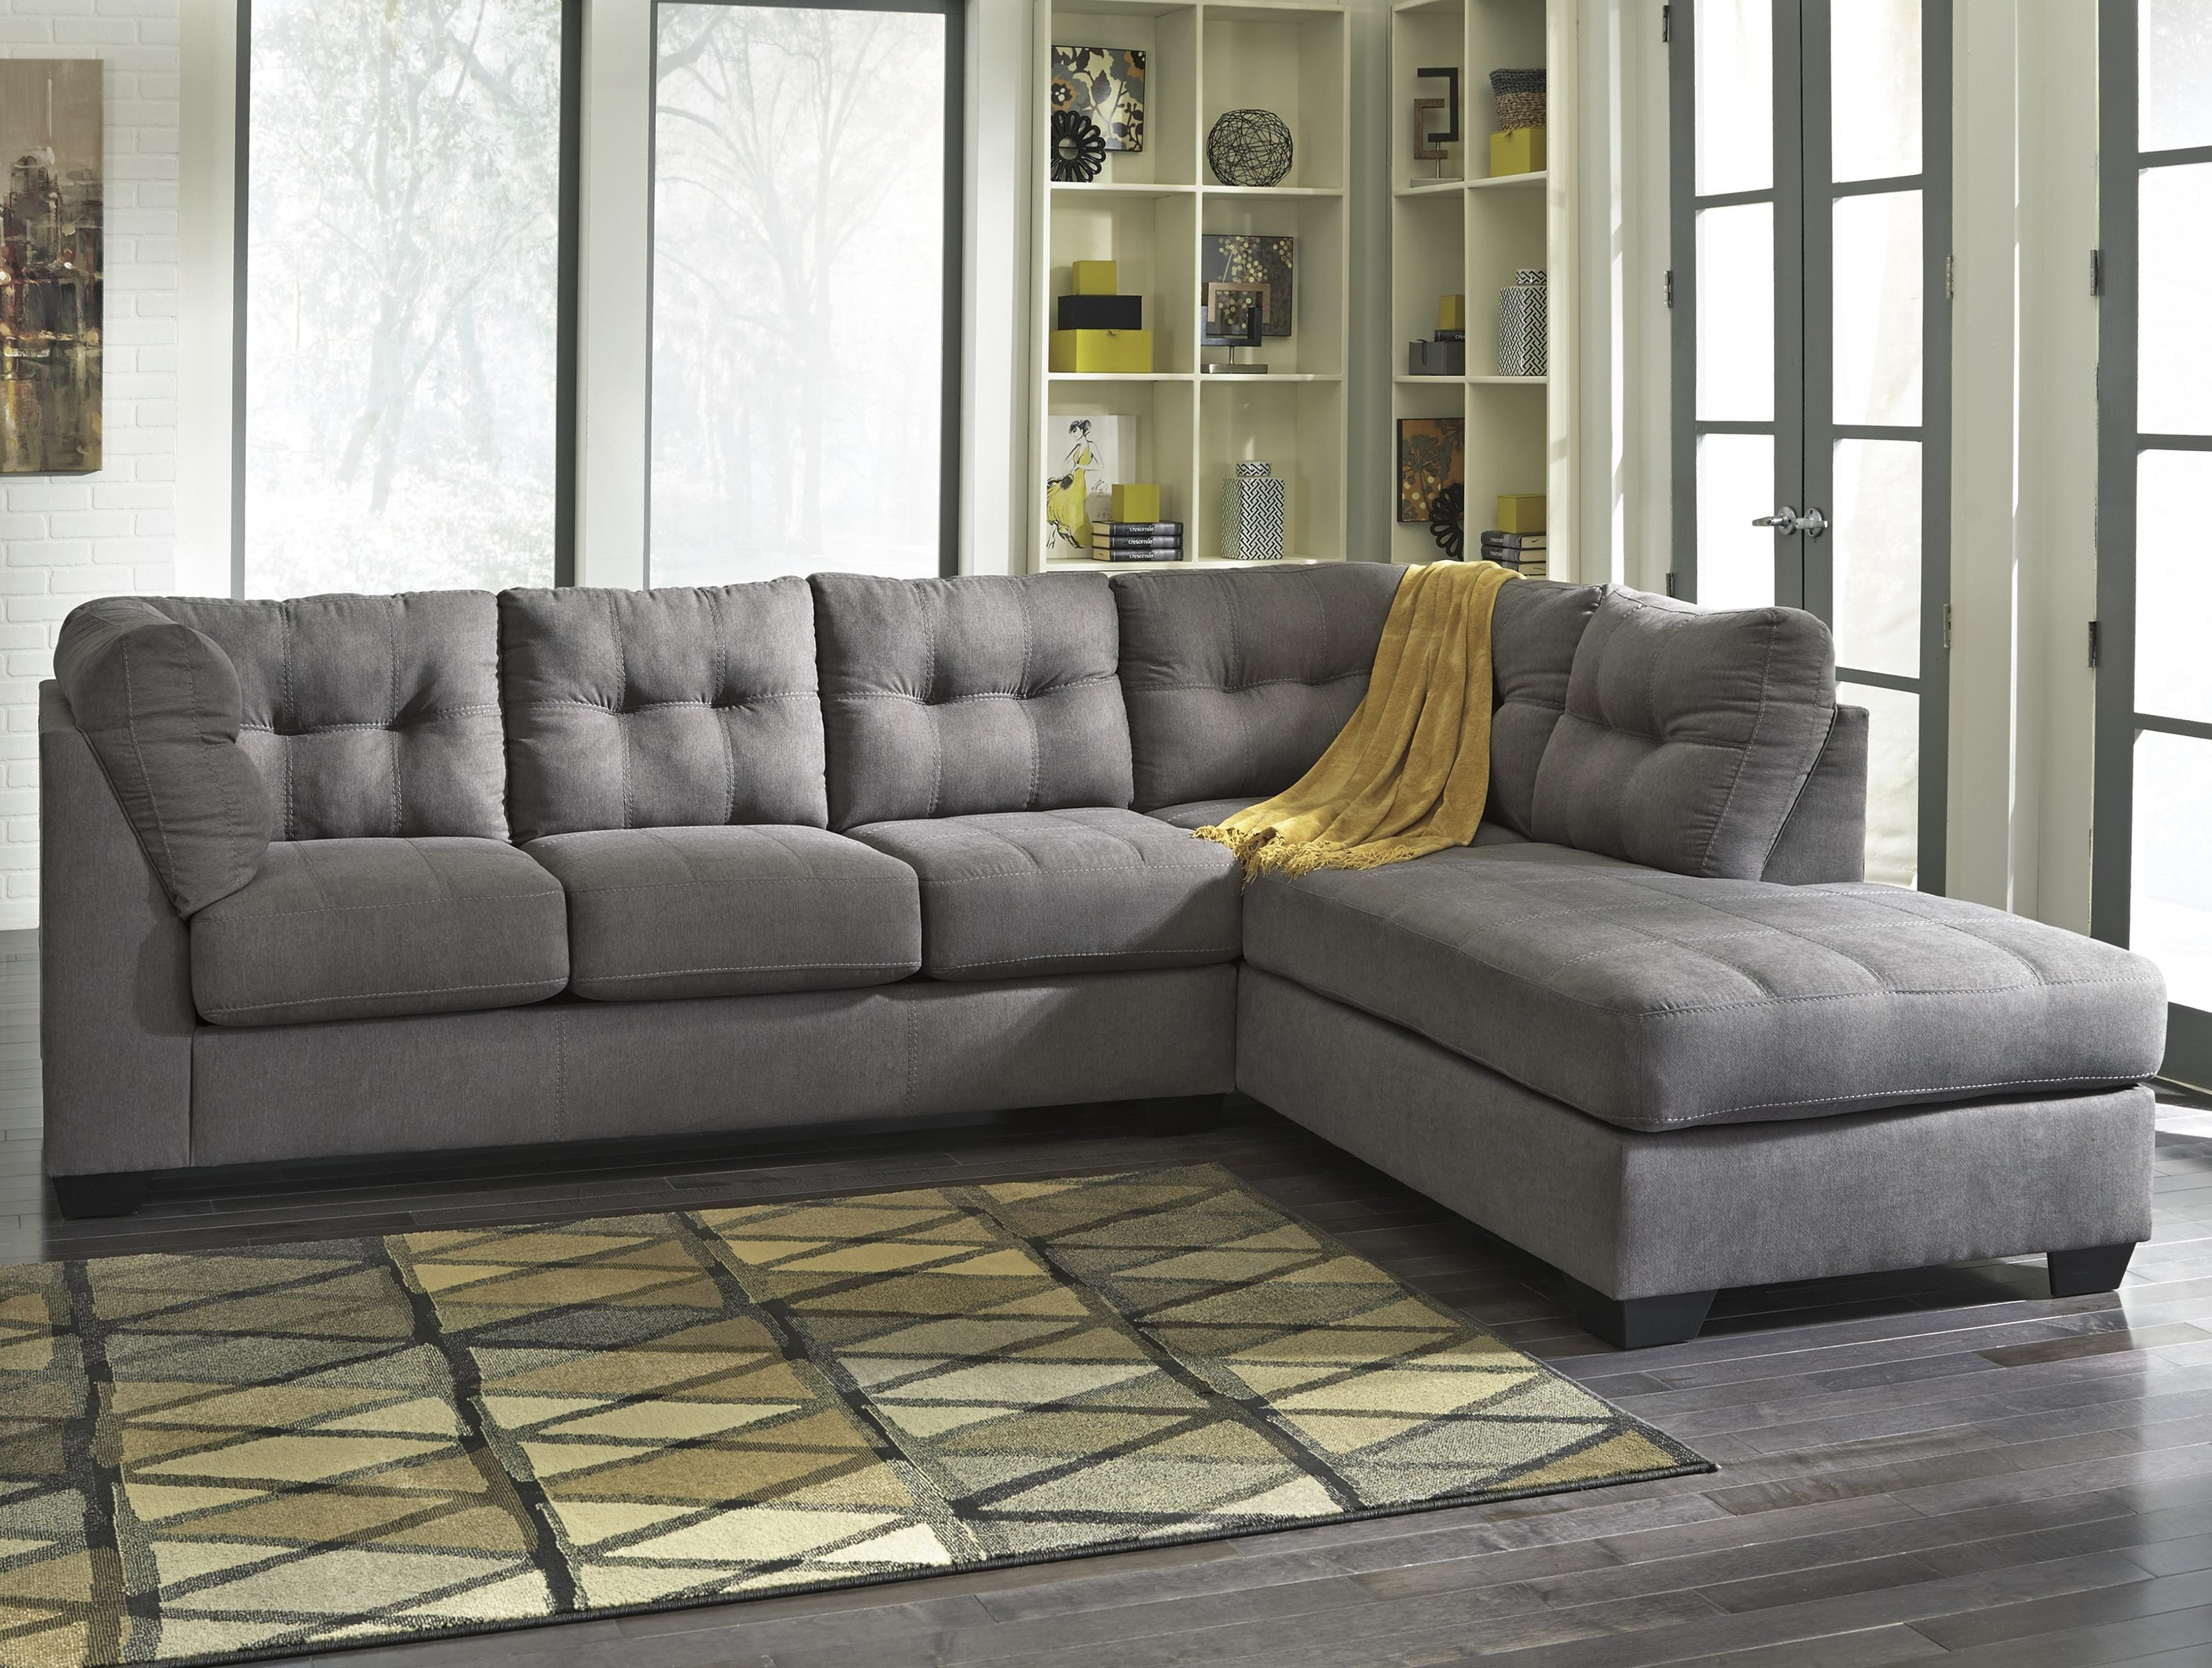 Sectional Sofas With Regard To Well Known Benchcraft Maier – Charcoal 2 Piece Sectional W/ Sleeper Sofa (View 17 of 20)